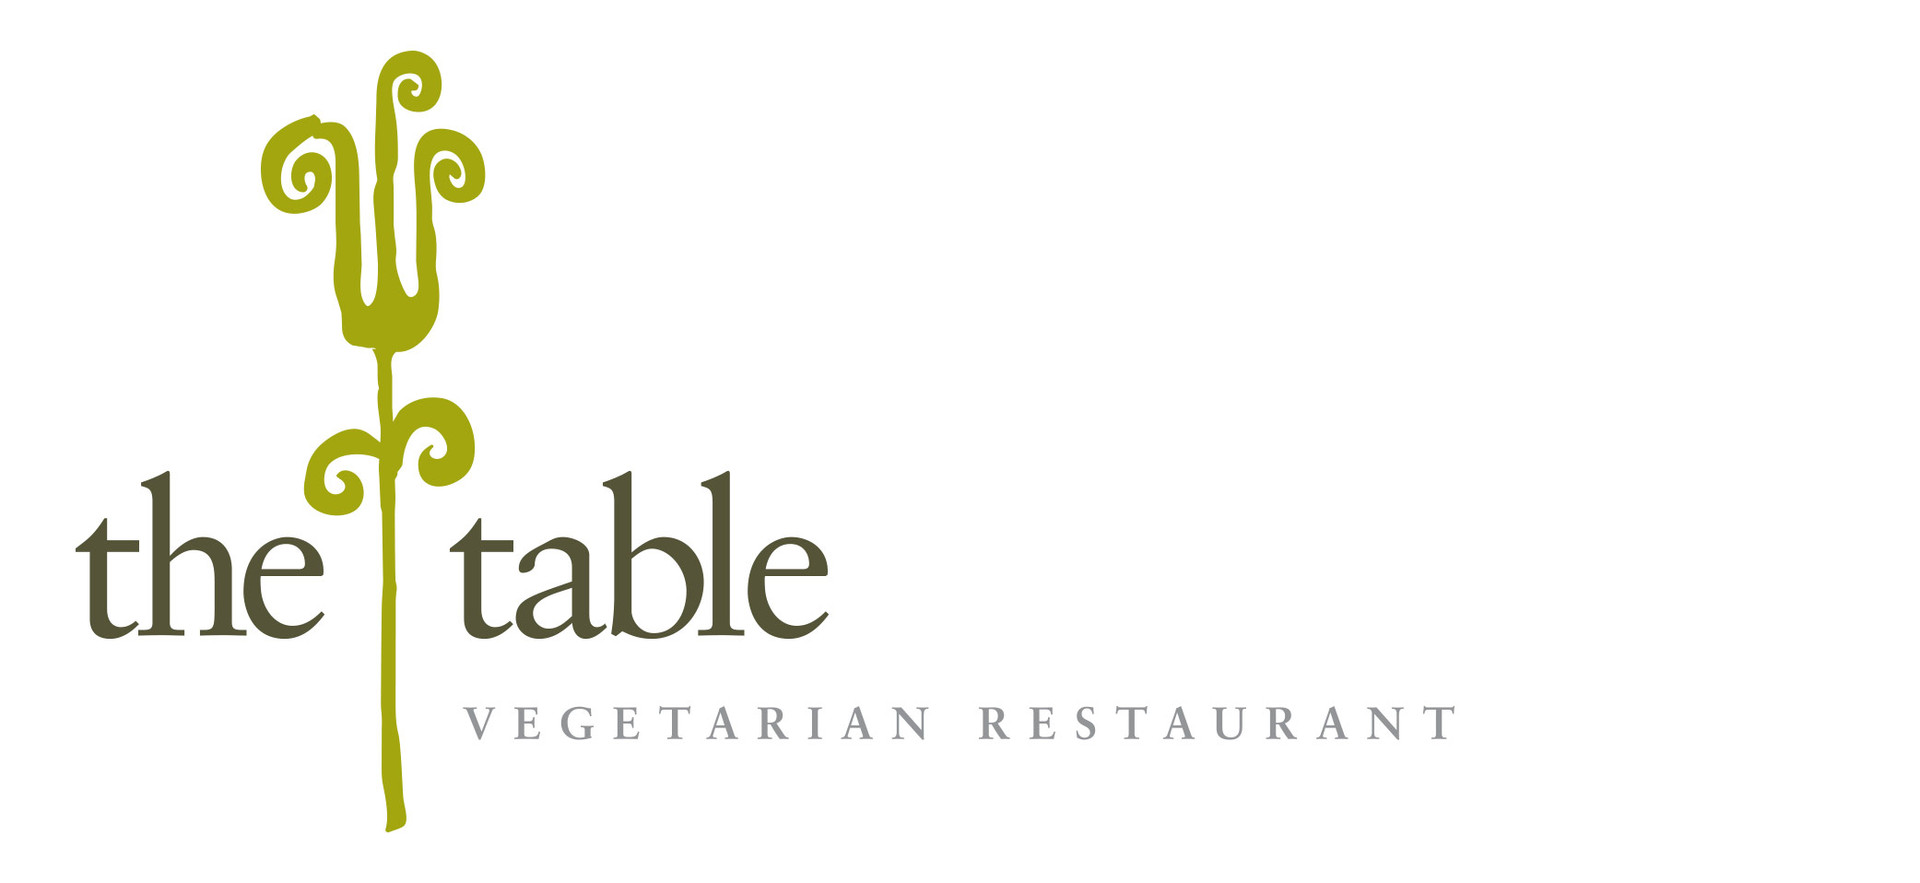 The Table Restaurant logo